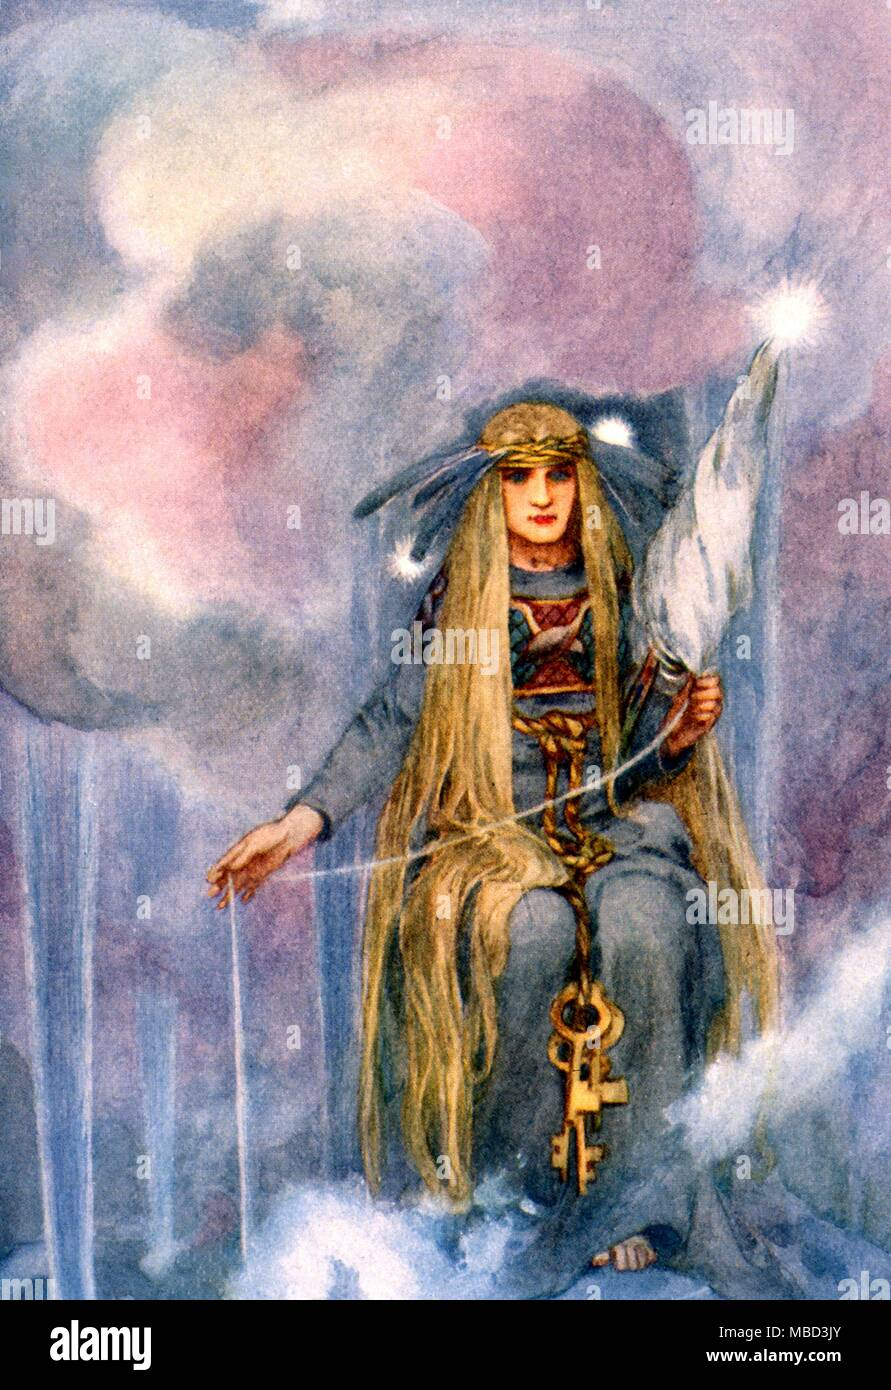 norse mythology the goddess freya wife of odin the chariot of